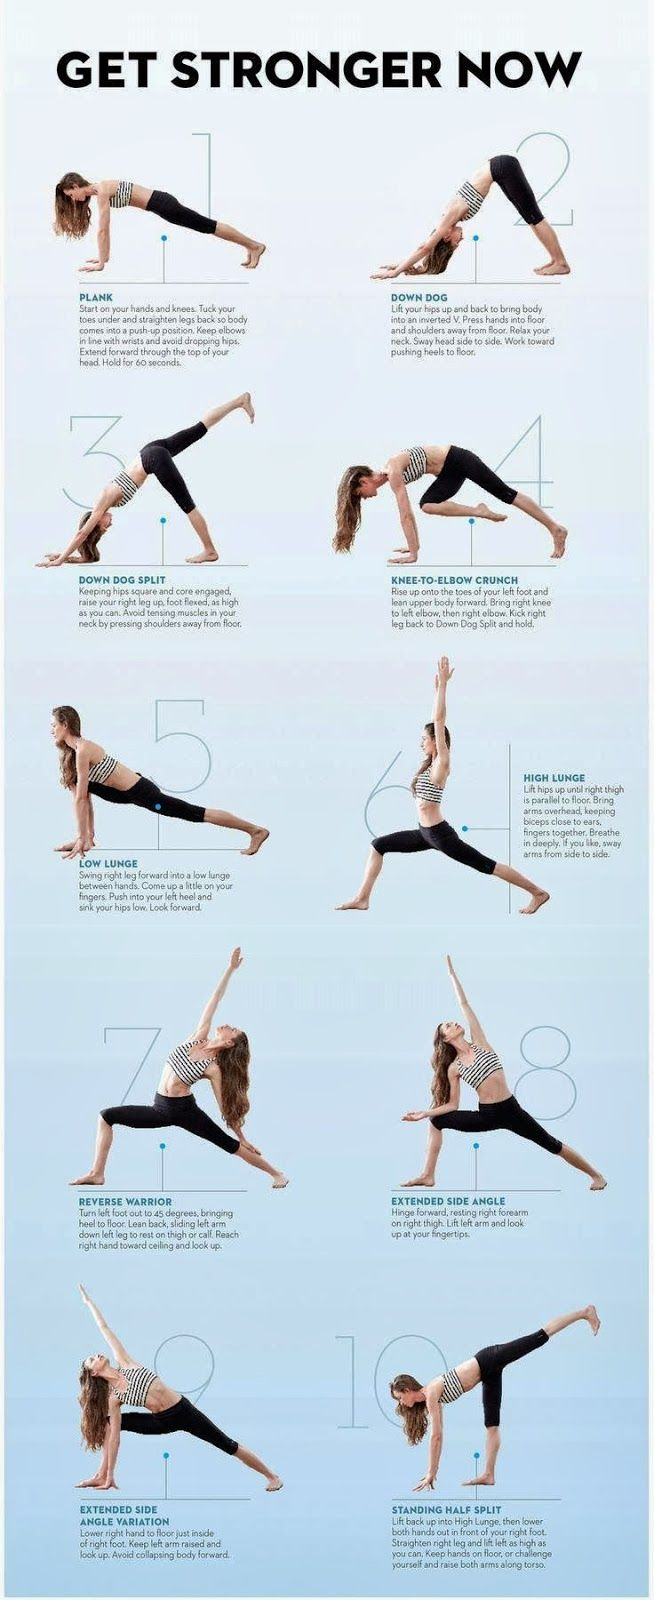 Yoga poses and stretches. I think yoga will be a benefit for doing in between taekwondo classes.